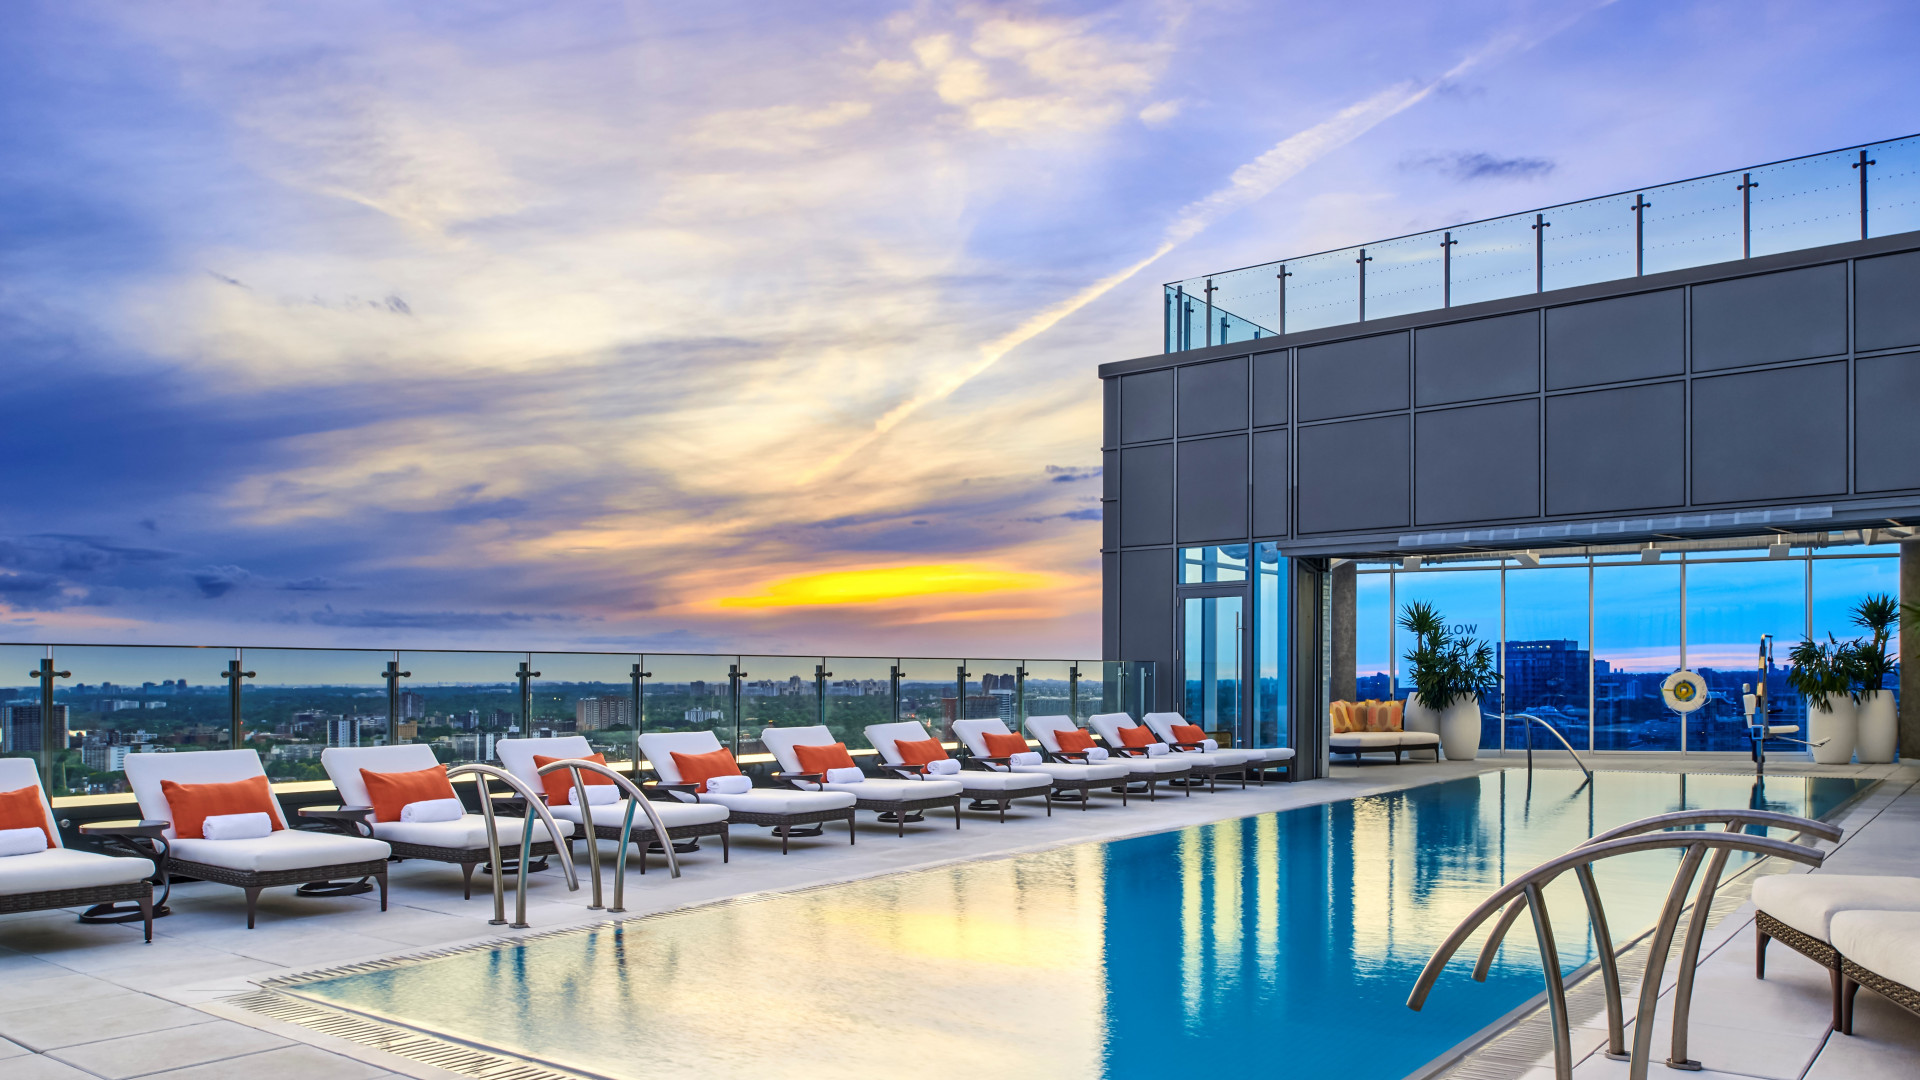 Best hotels Toronto staycation | Hotel X rooftop pool